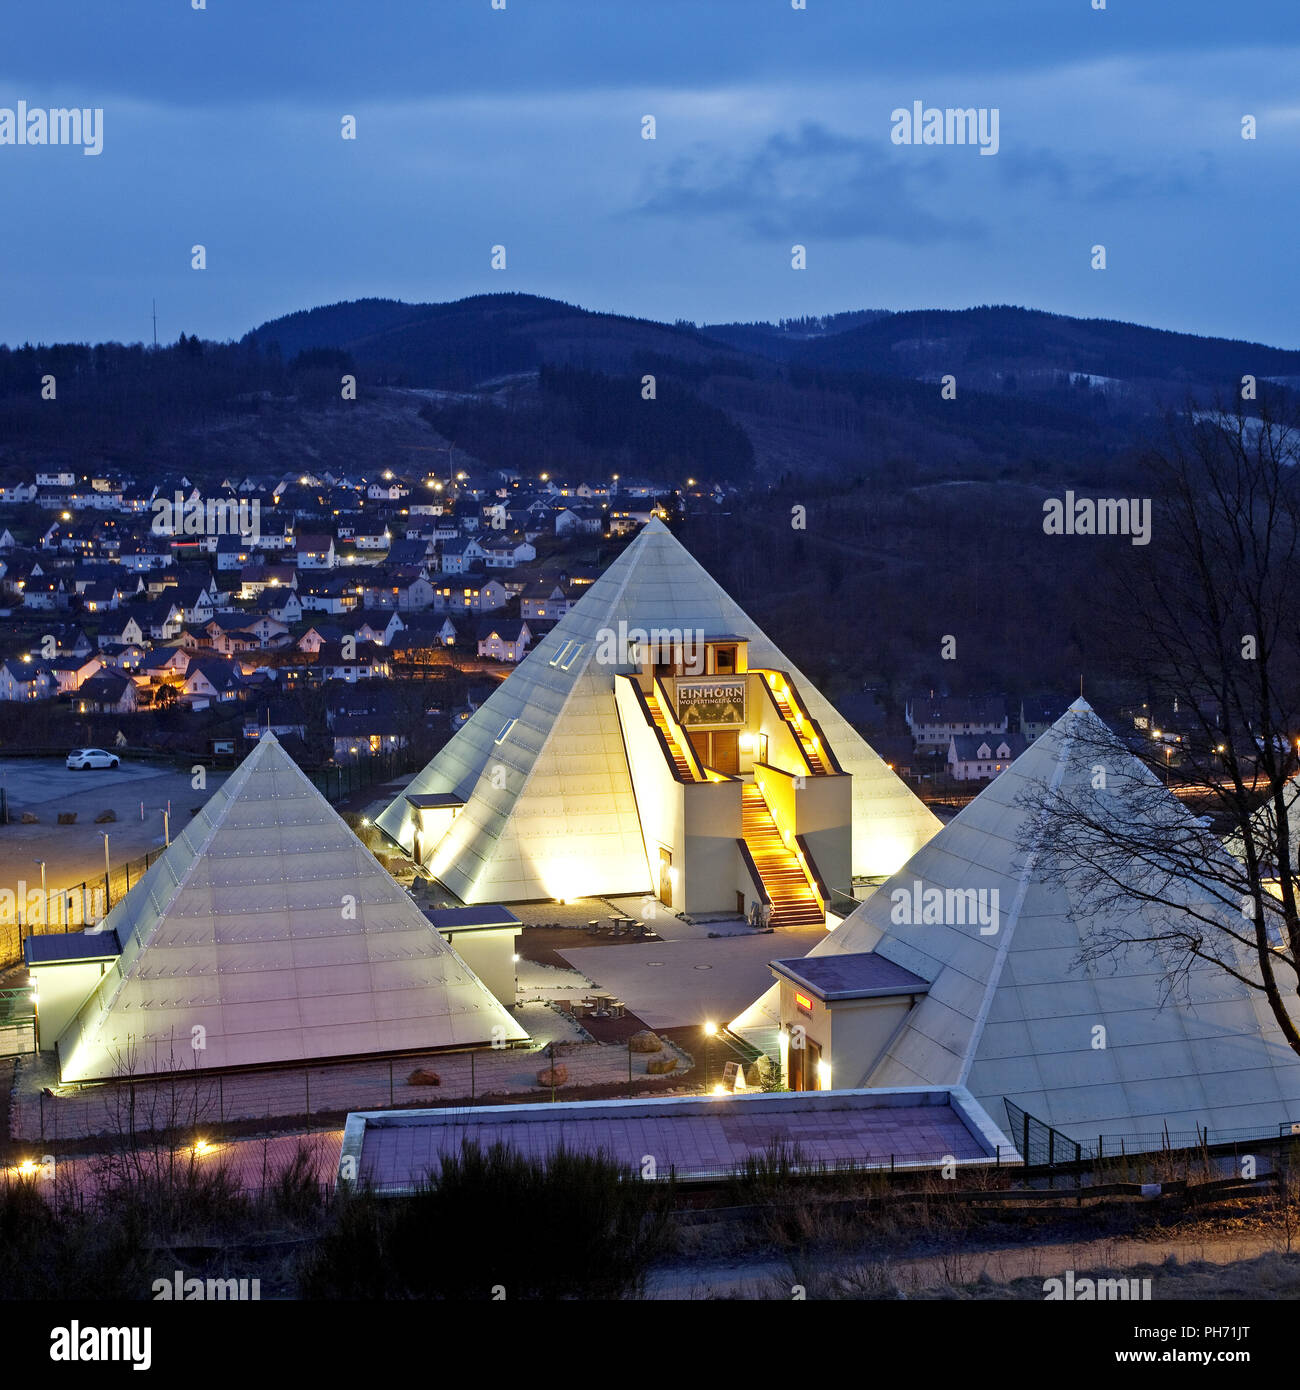 The Sauerland Pyramids in Meggen in Lennestadt. Stock Photo